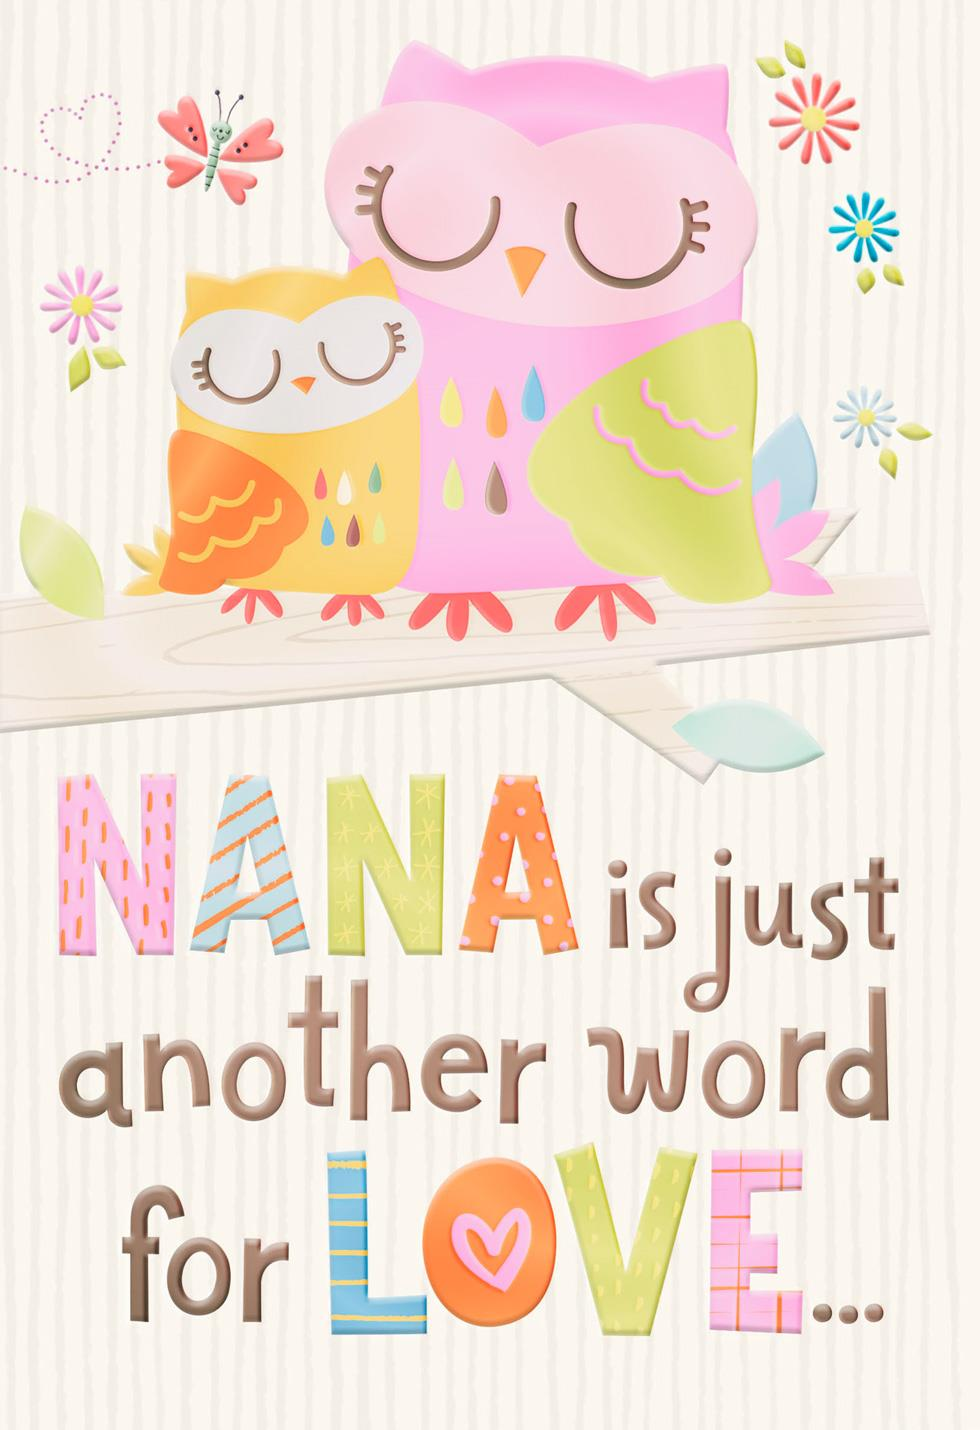 Graduation Gift Ideas >> Two Owls Nana Means Love Grandparents Day Card - Greeting Cards - Hallmark